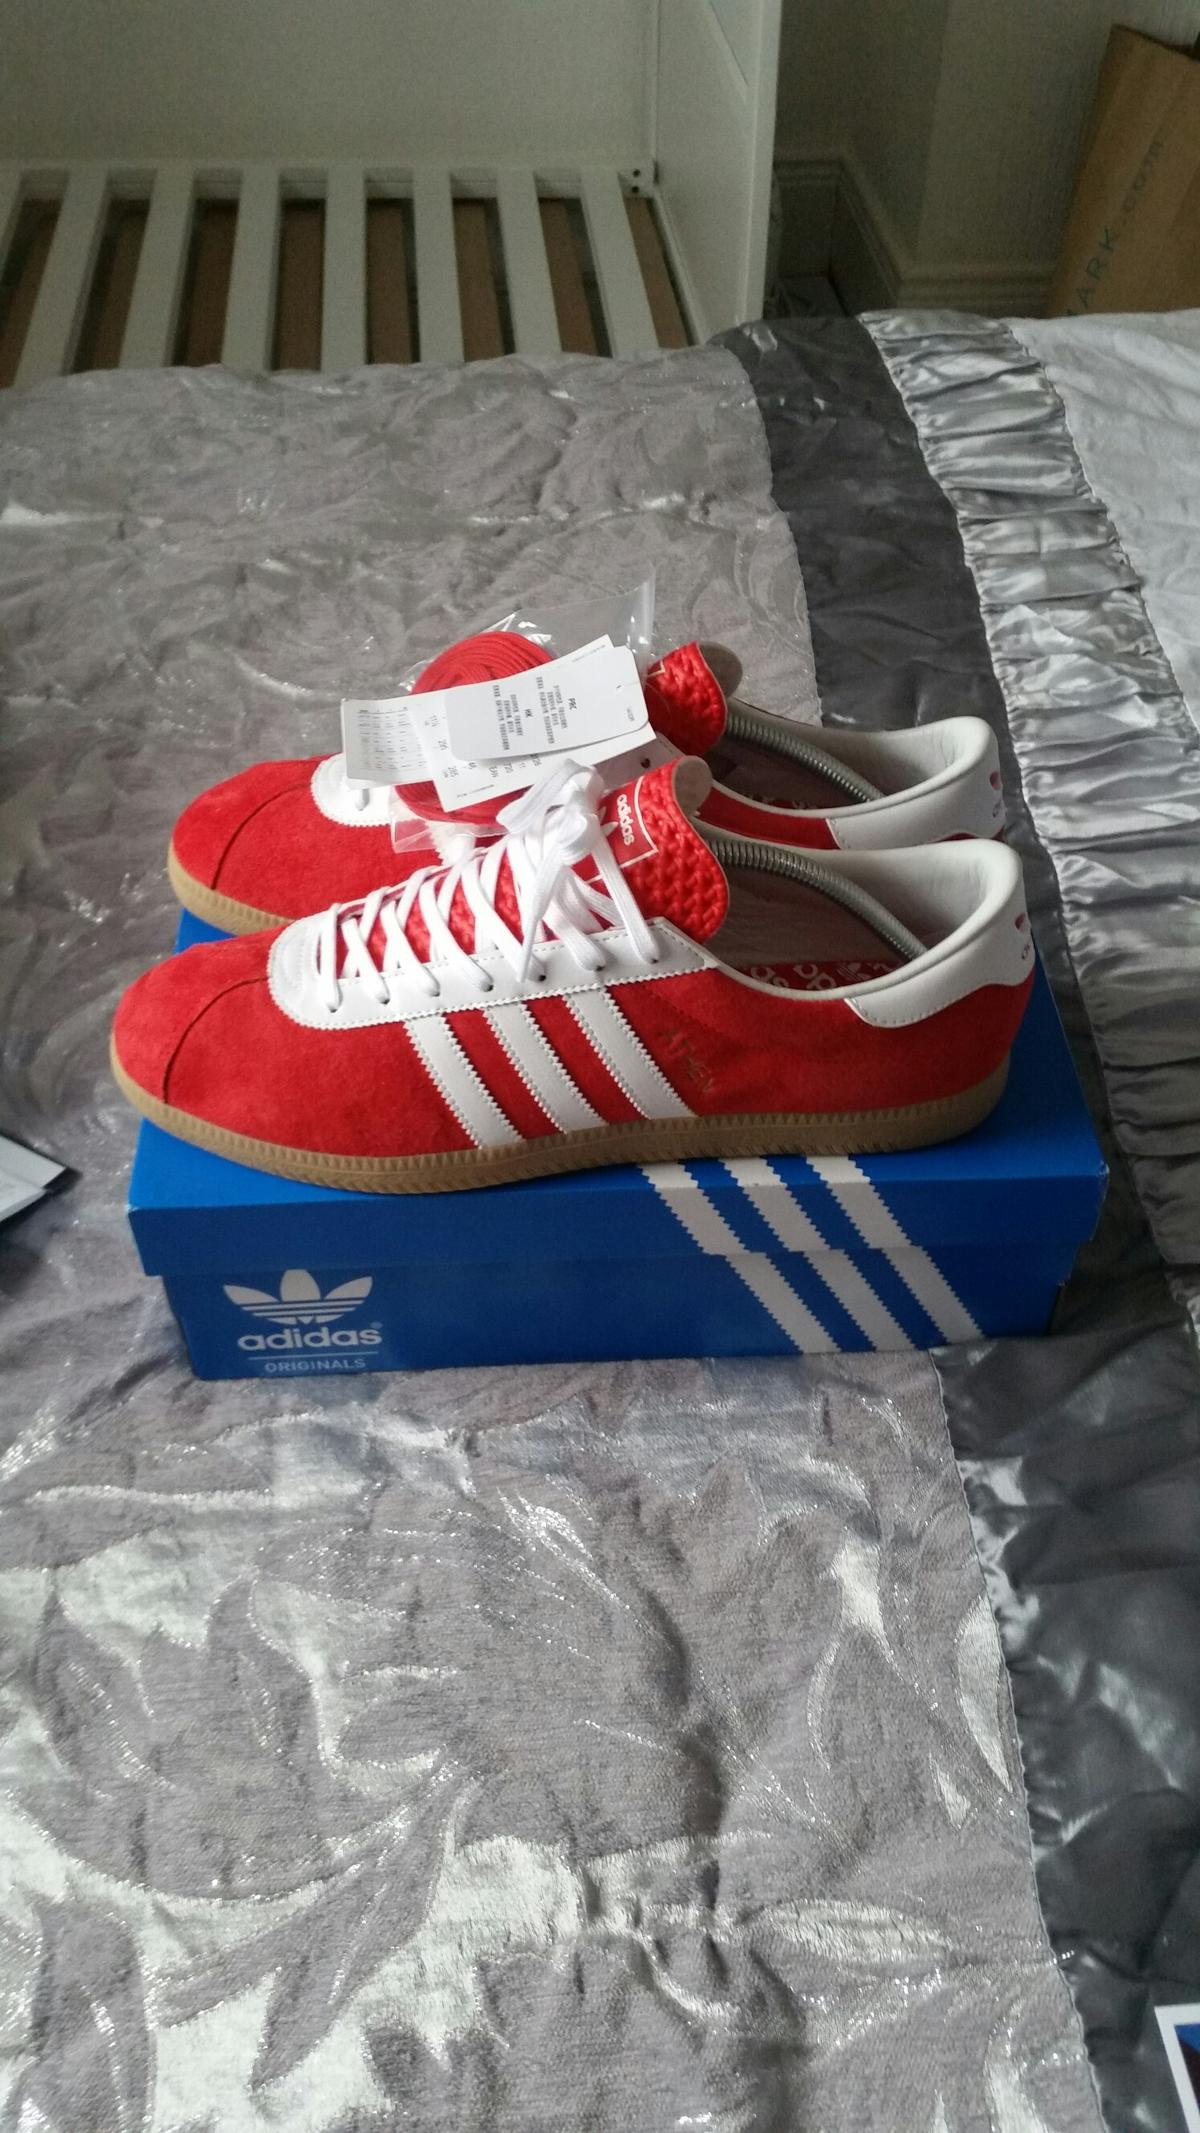 Adidas Athen Red trainers in BT14 Belfast for £91.00 for